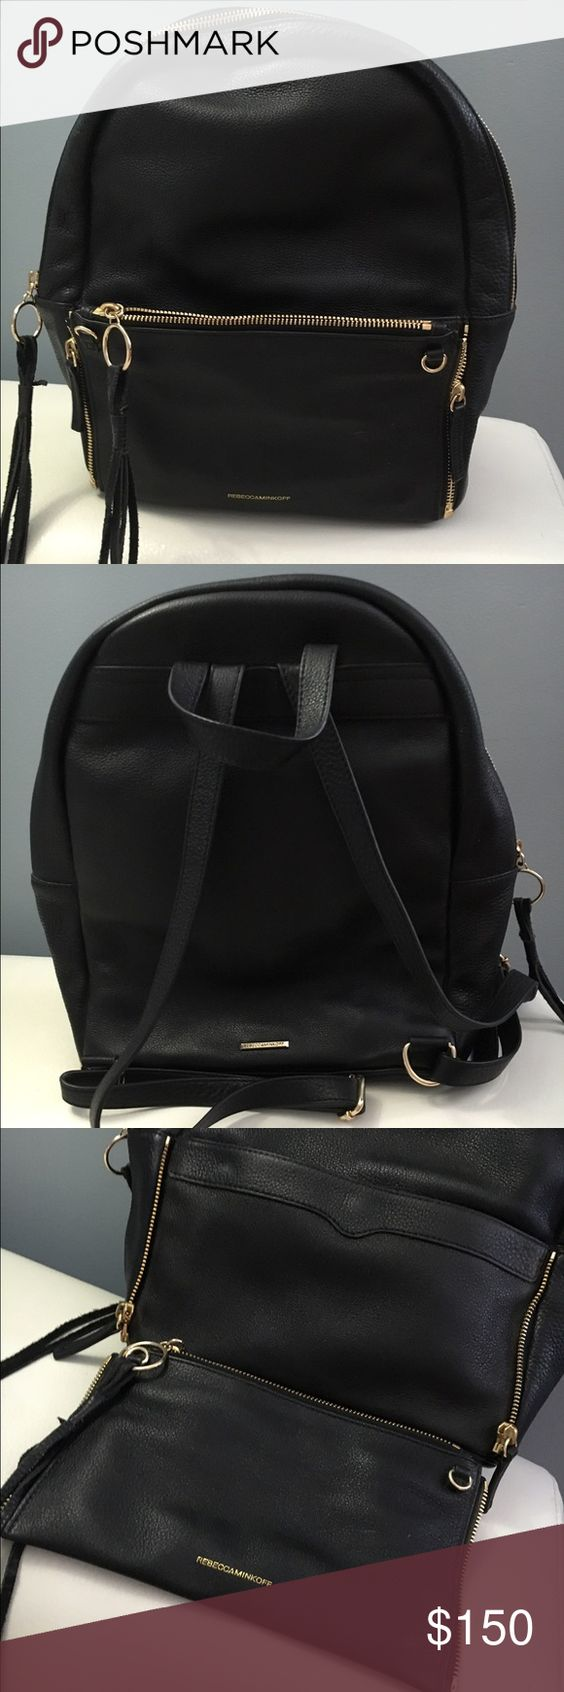 Rebecca Minkoff backpack Black on gold Backpack comes with detachable clutch, in good condition. Rebecca Minkoff Bags Backpacks